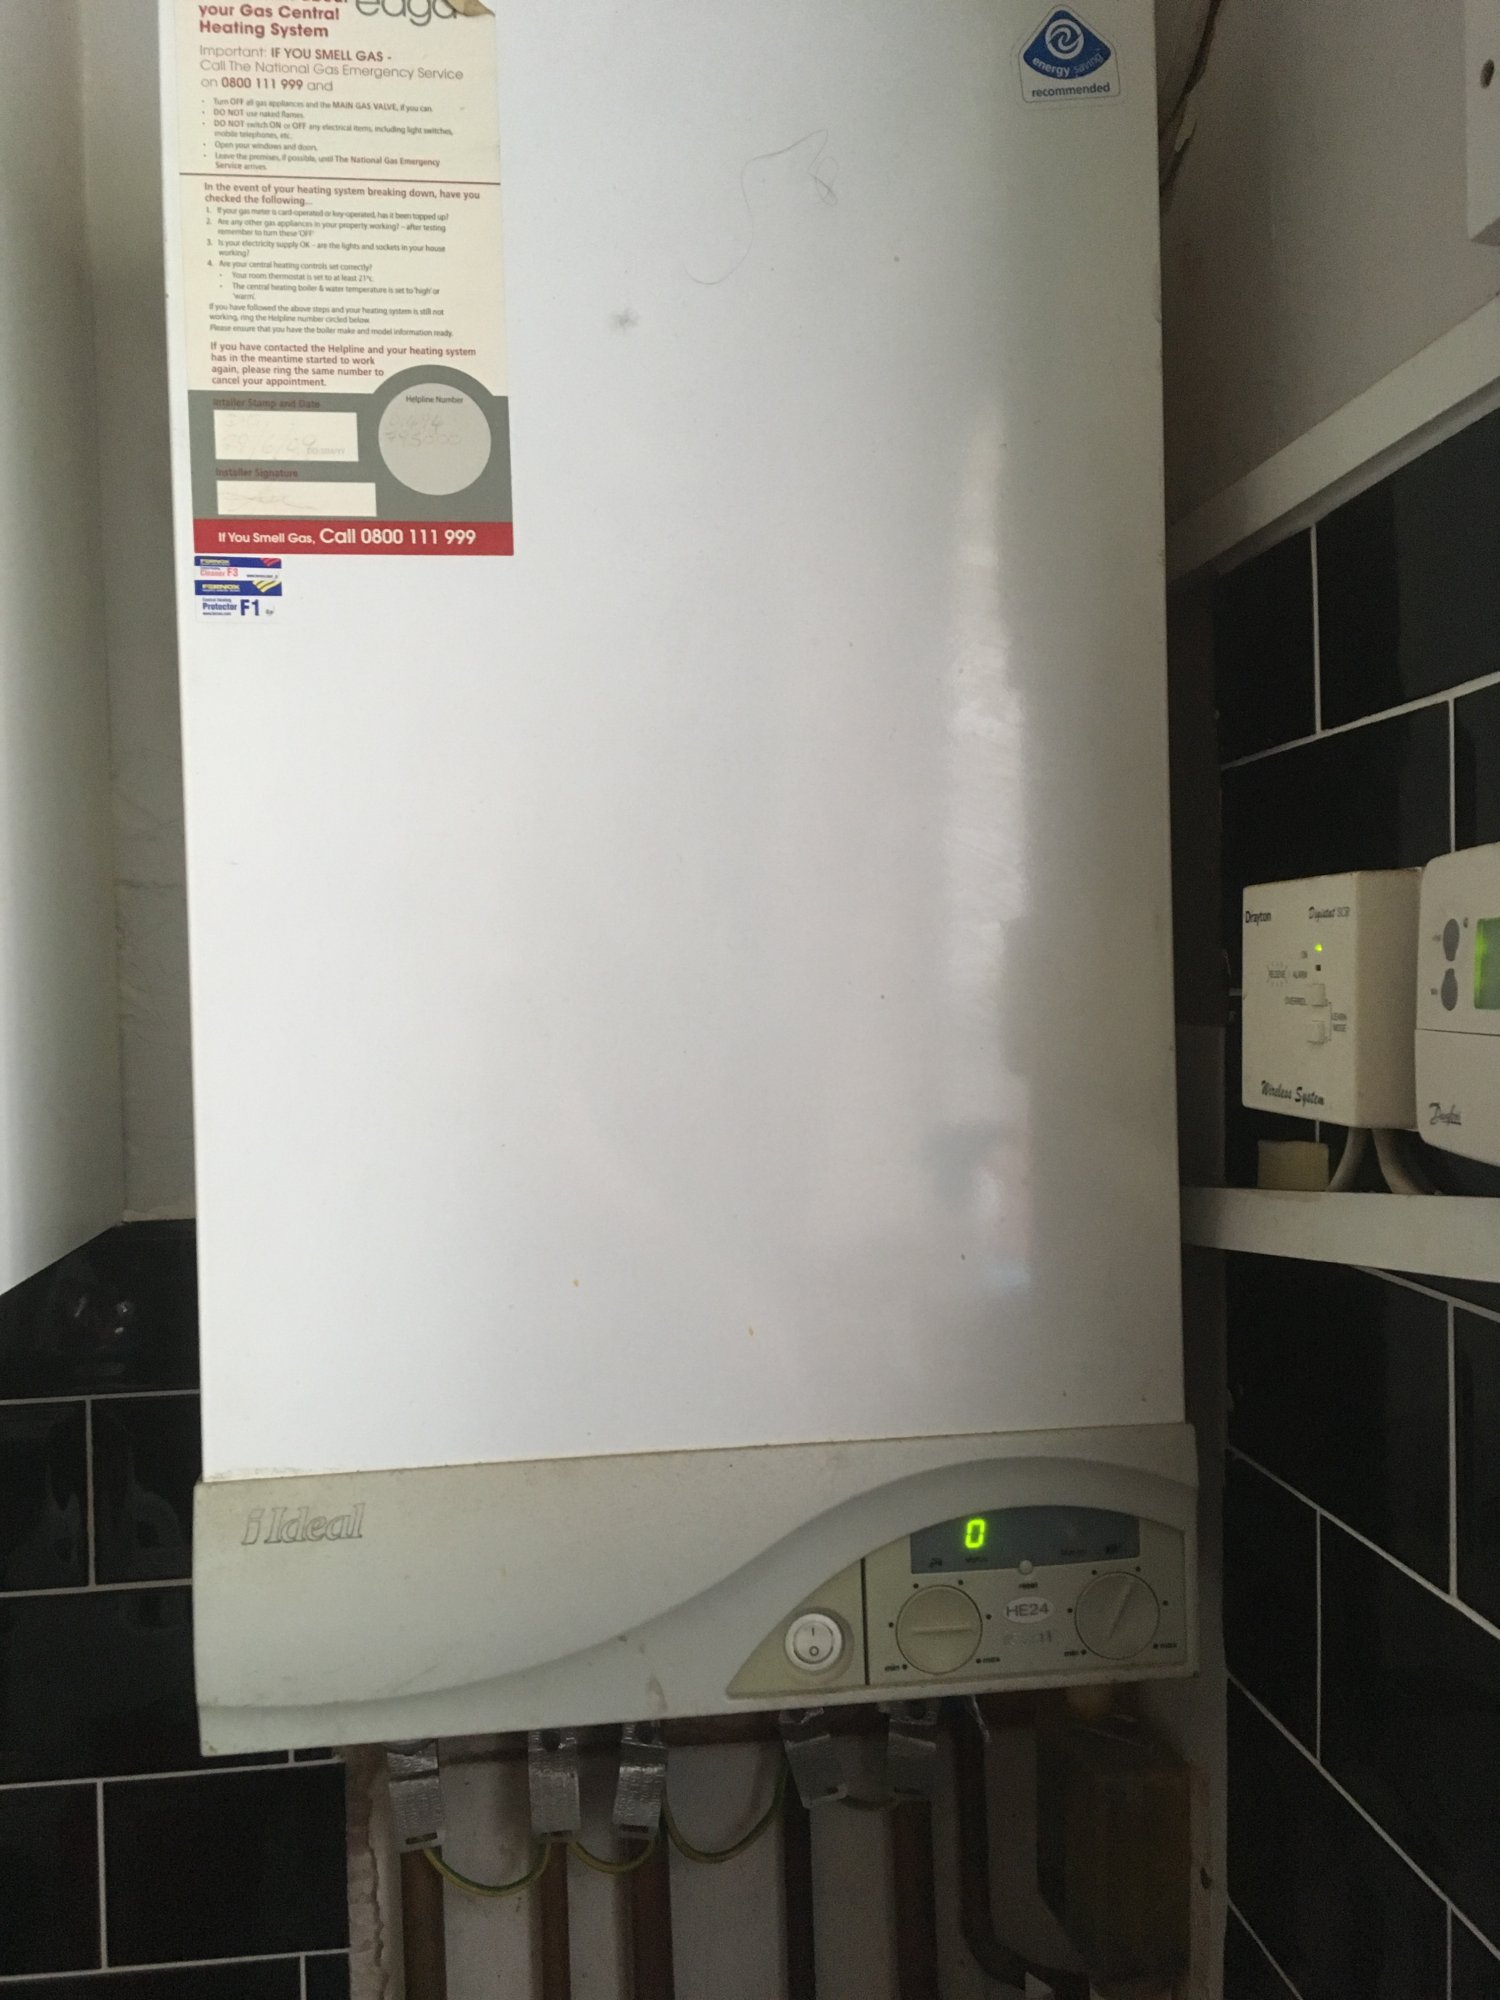 New Boiler installation | DIYnot Forums